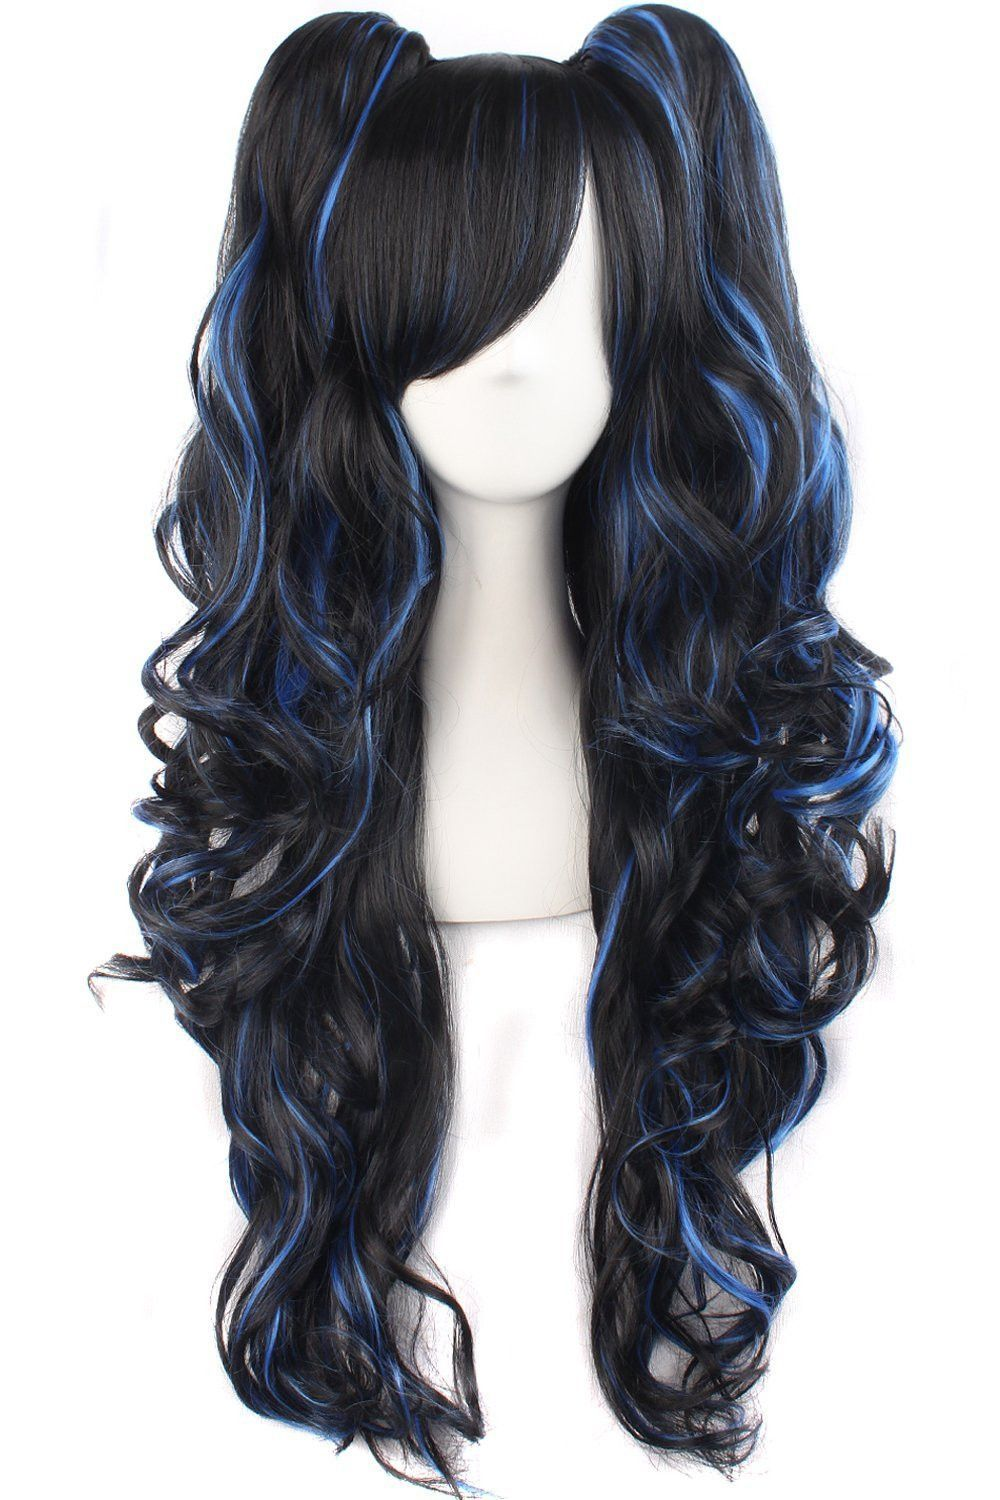 in-defense-of-the-innocent: Long curly clip on ponytails anime cosplay wig Hair styles, Wigs ...